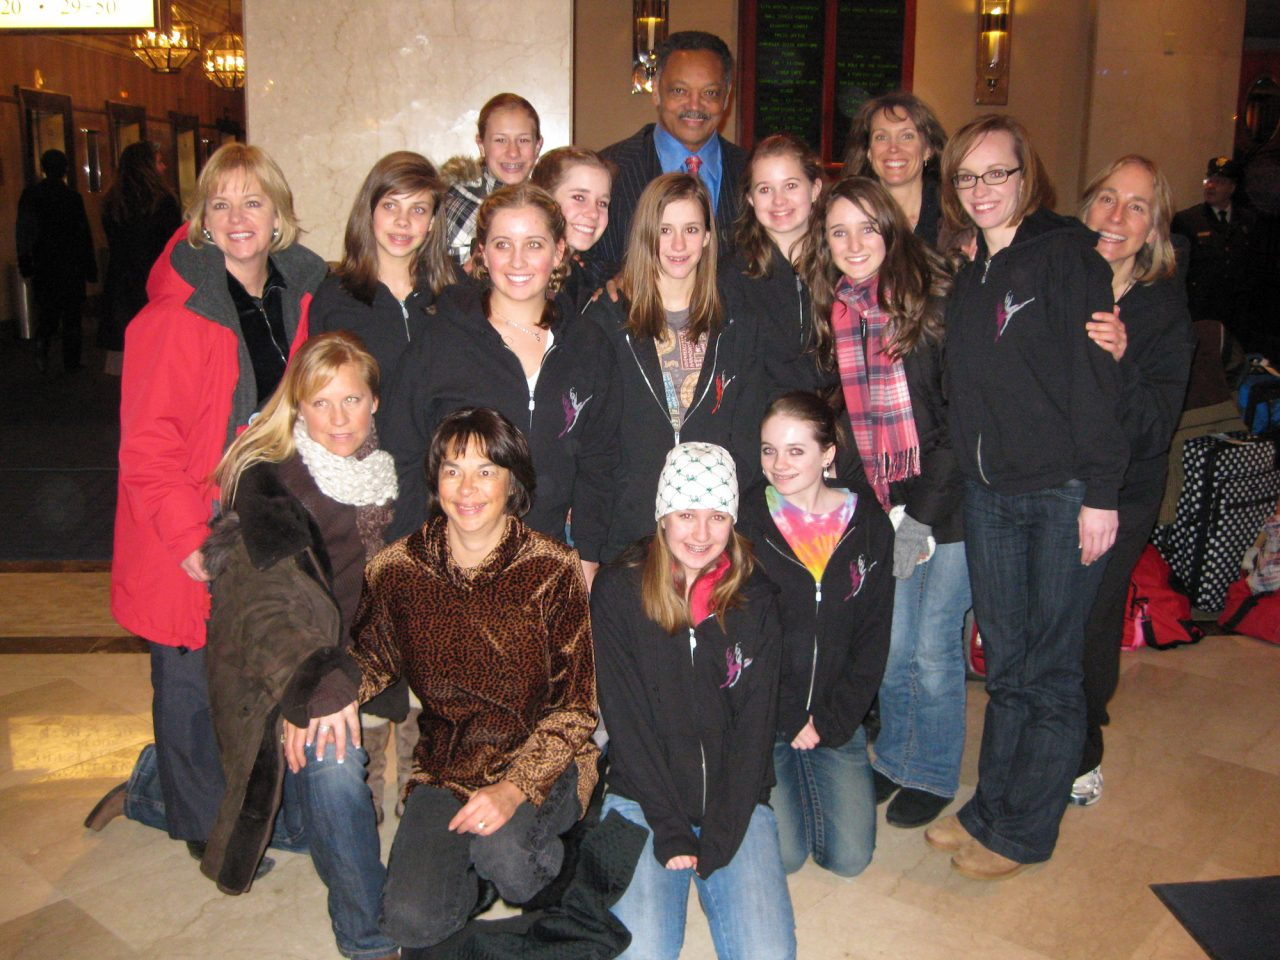 JoAnn's volunteer work with Vail Youth Ballet Company